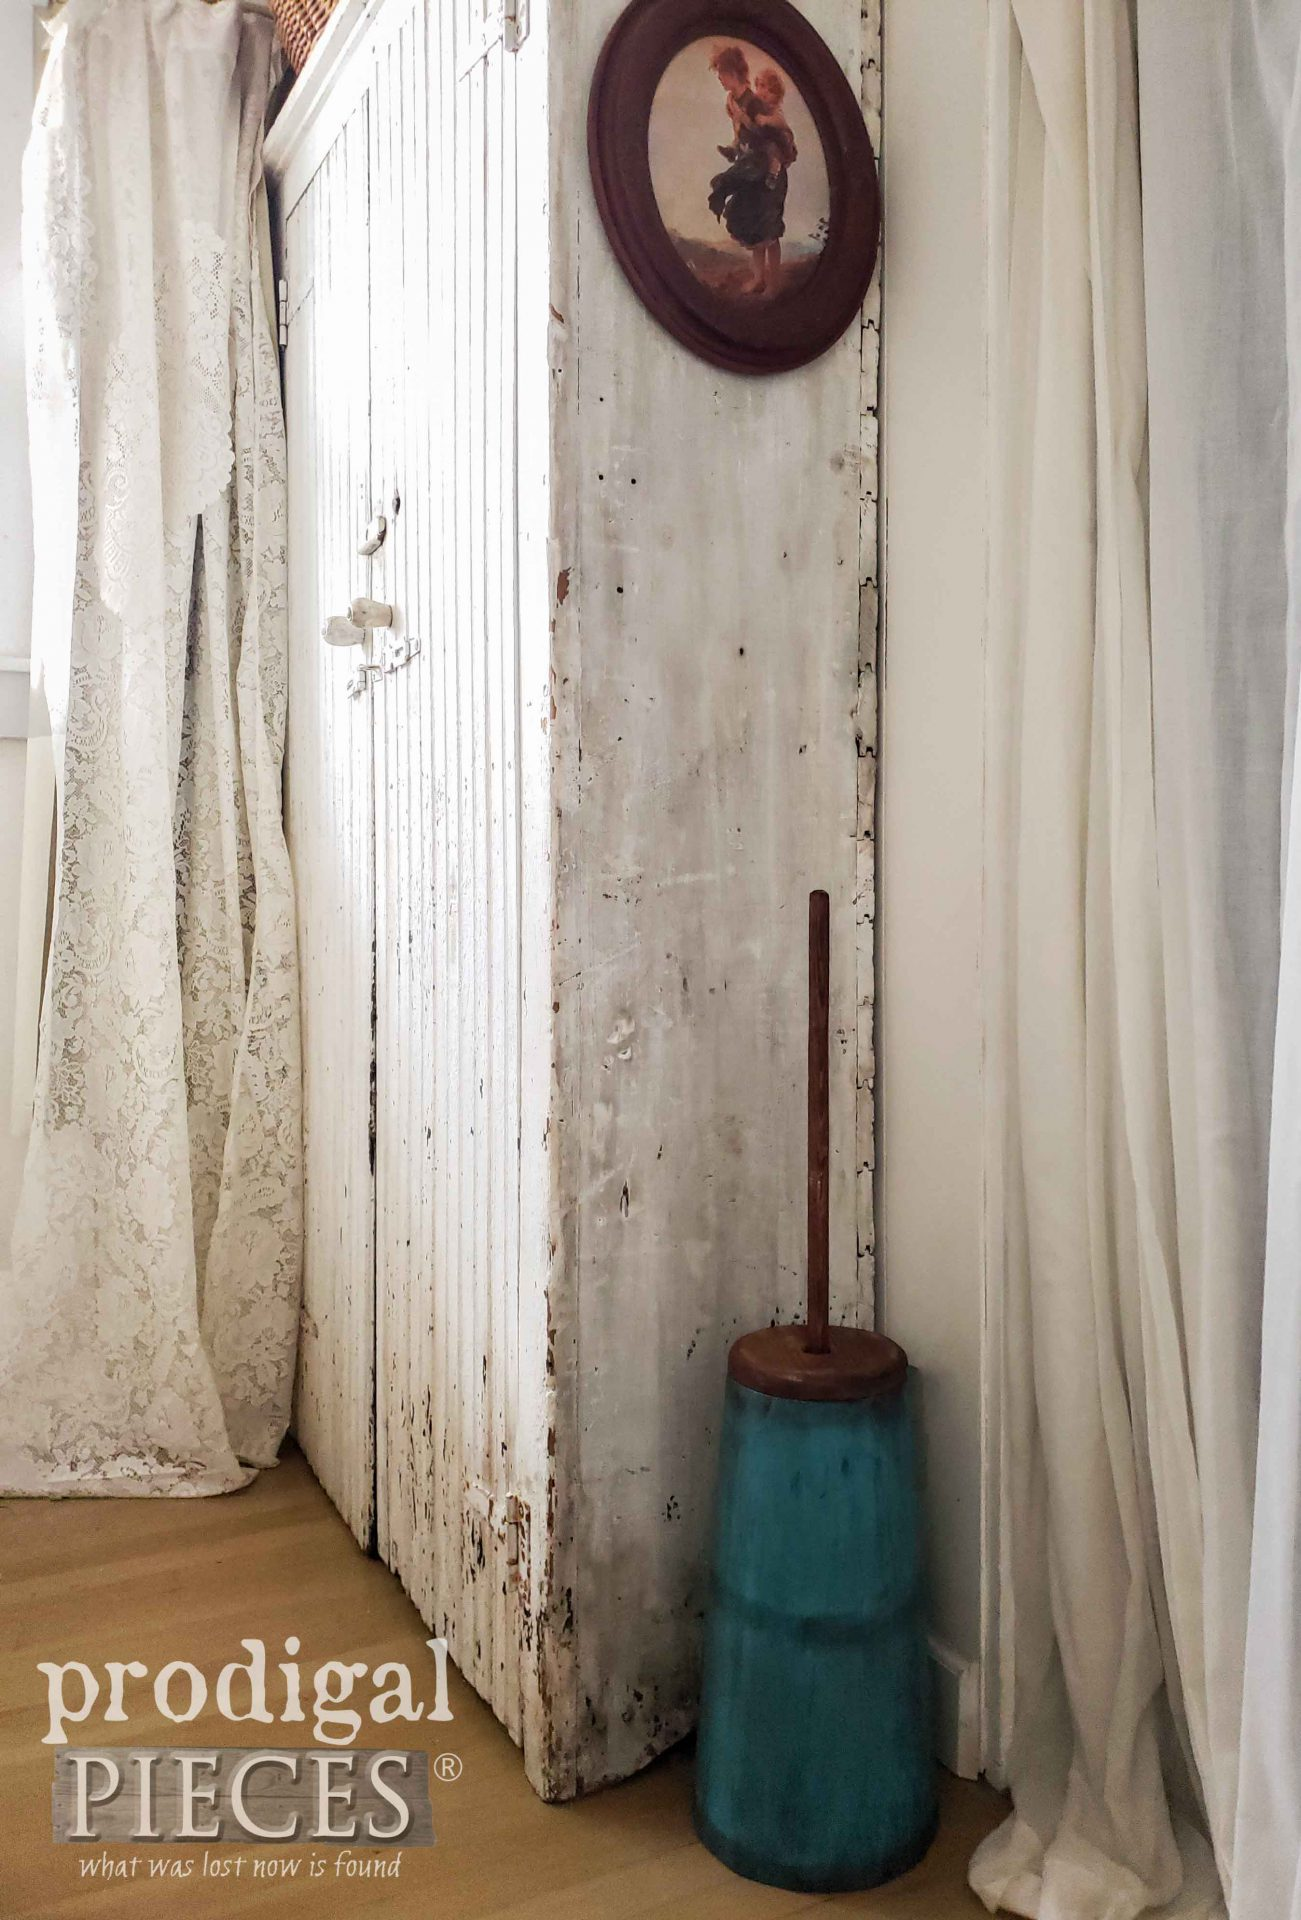 Farmhouse Style Decor with Rustic Antique Butter Churn by Larissa of Prodigal Pieces | prodigalpieces.com #prodigalpieces #farmhouse #diy #home #homedecor #antique